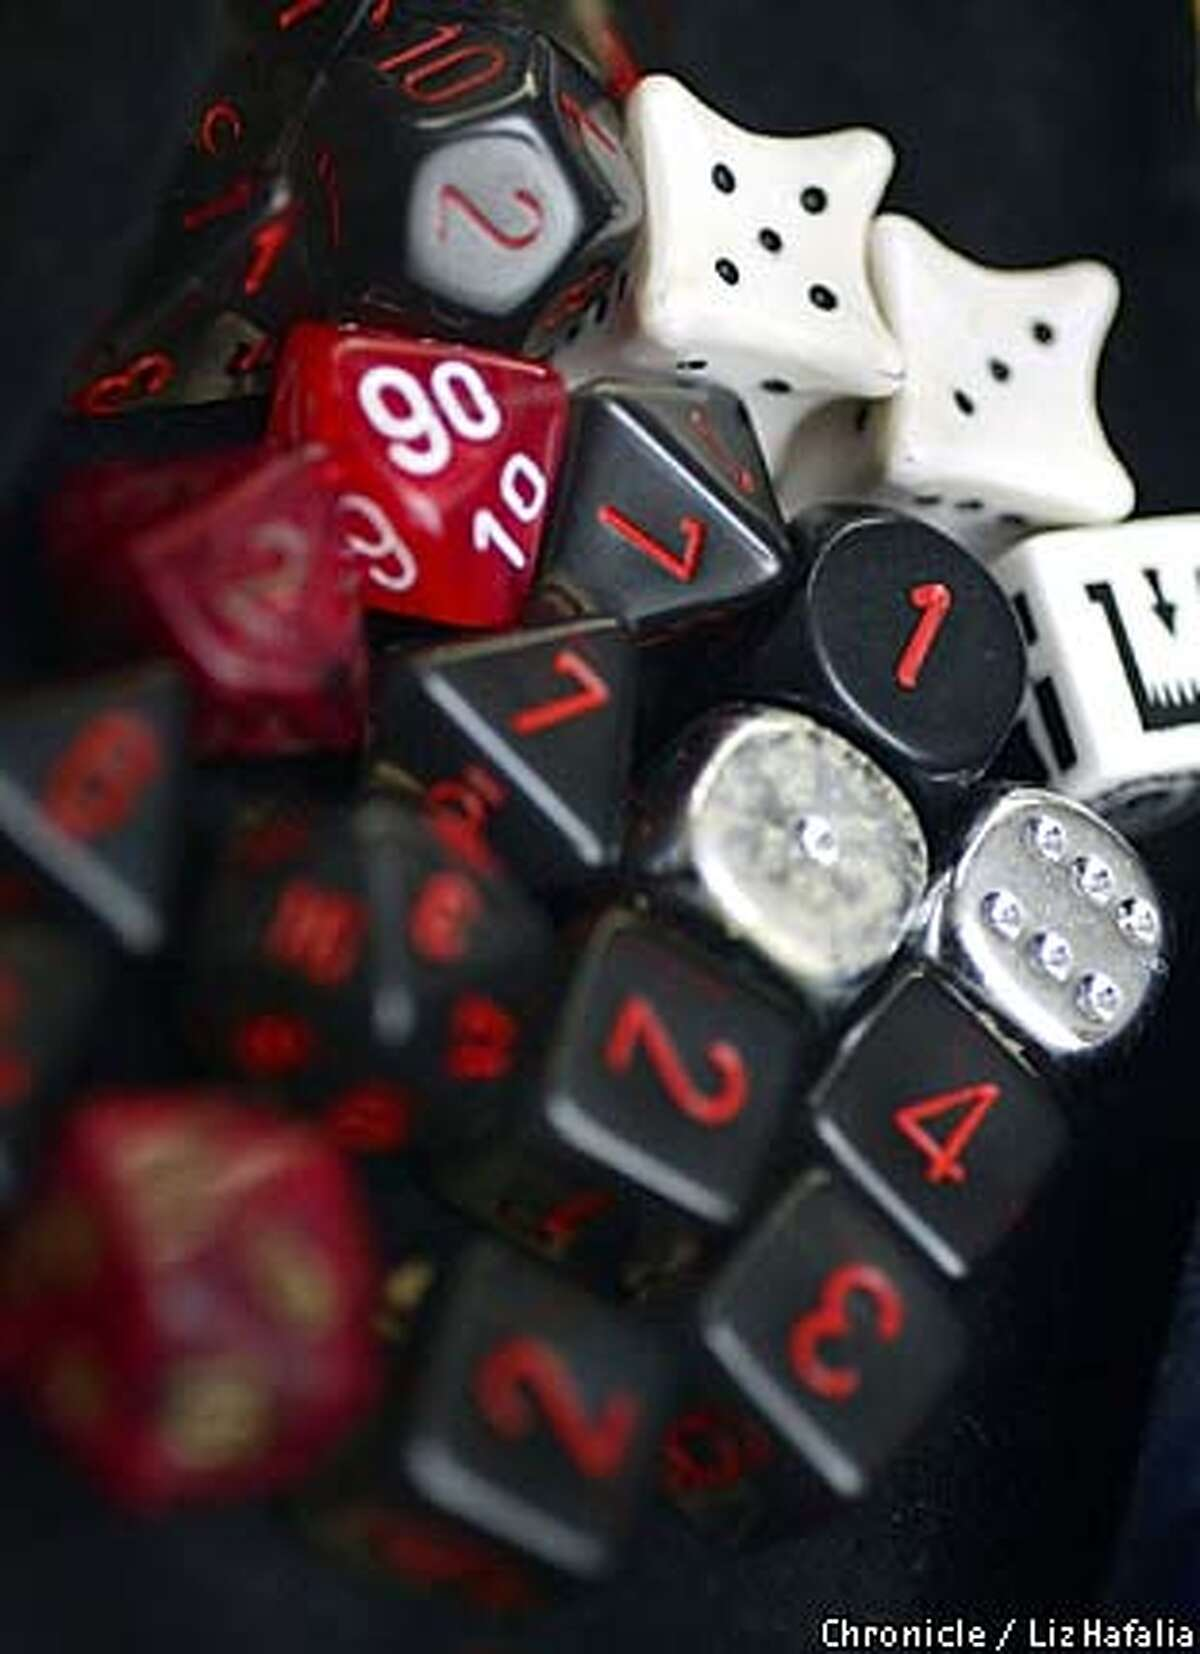 Dice are used during the game of Abantney to determine success or failure. (PHOTOGRAPHED BY LIZ HAFALIA/THE SAN FRANCISCO CHRONICLE)